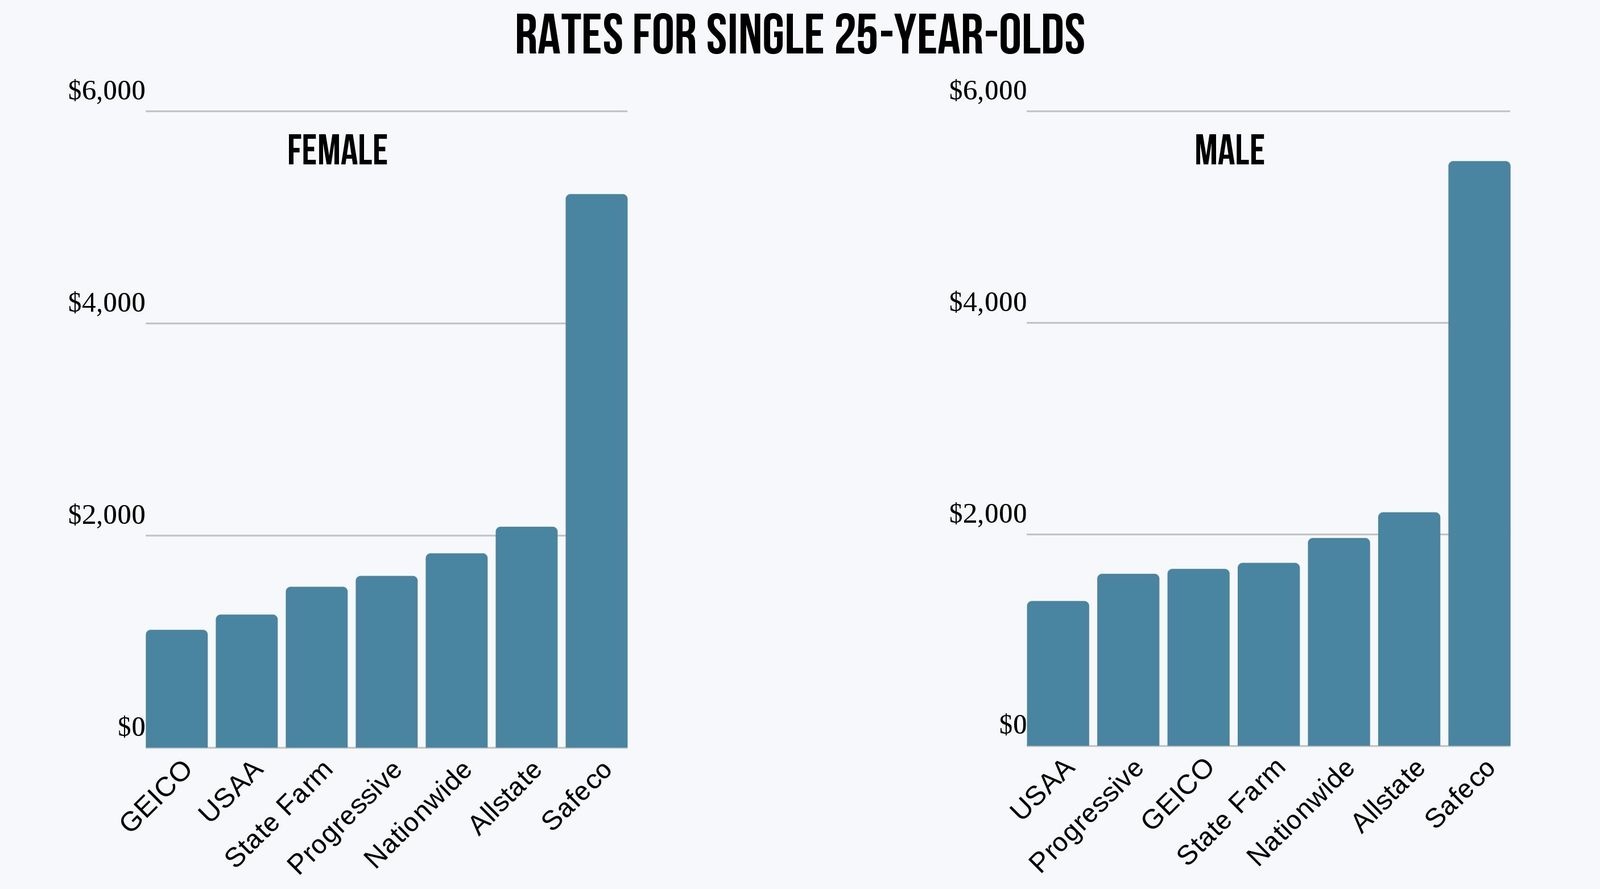 Car insurance rates for single 25-year-olds in NH